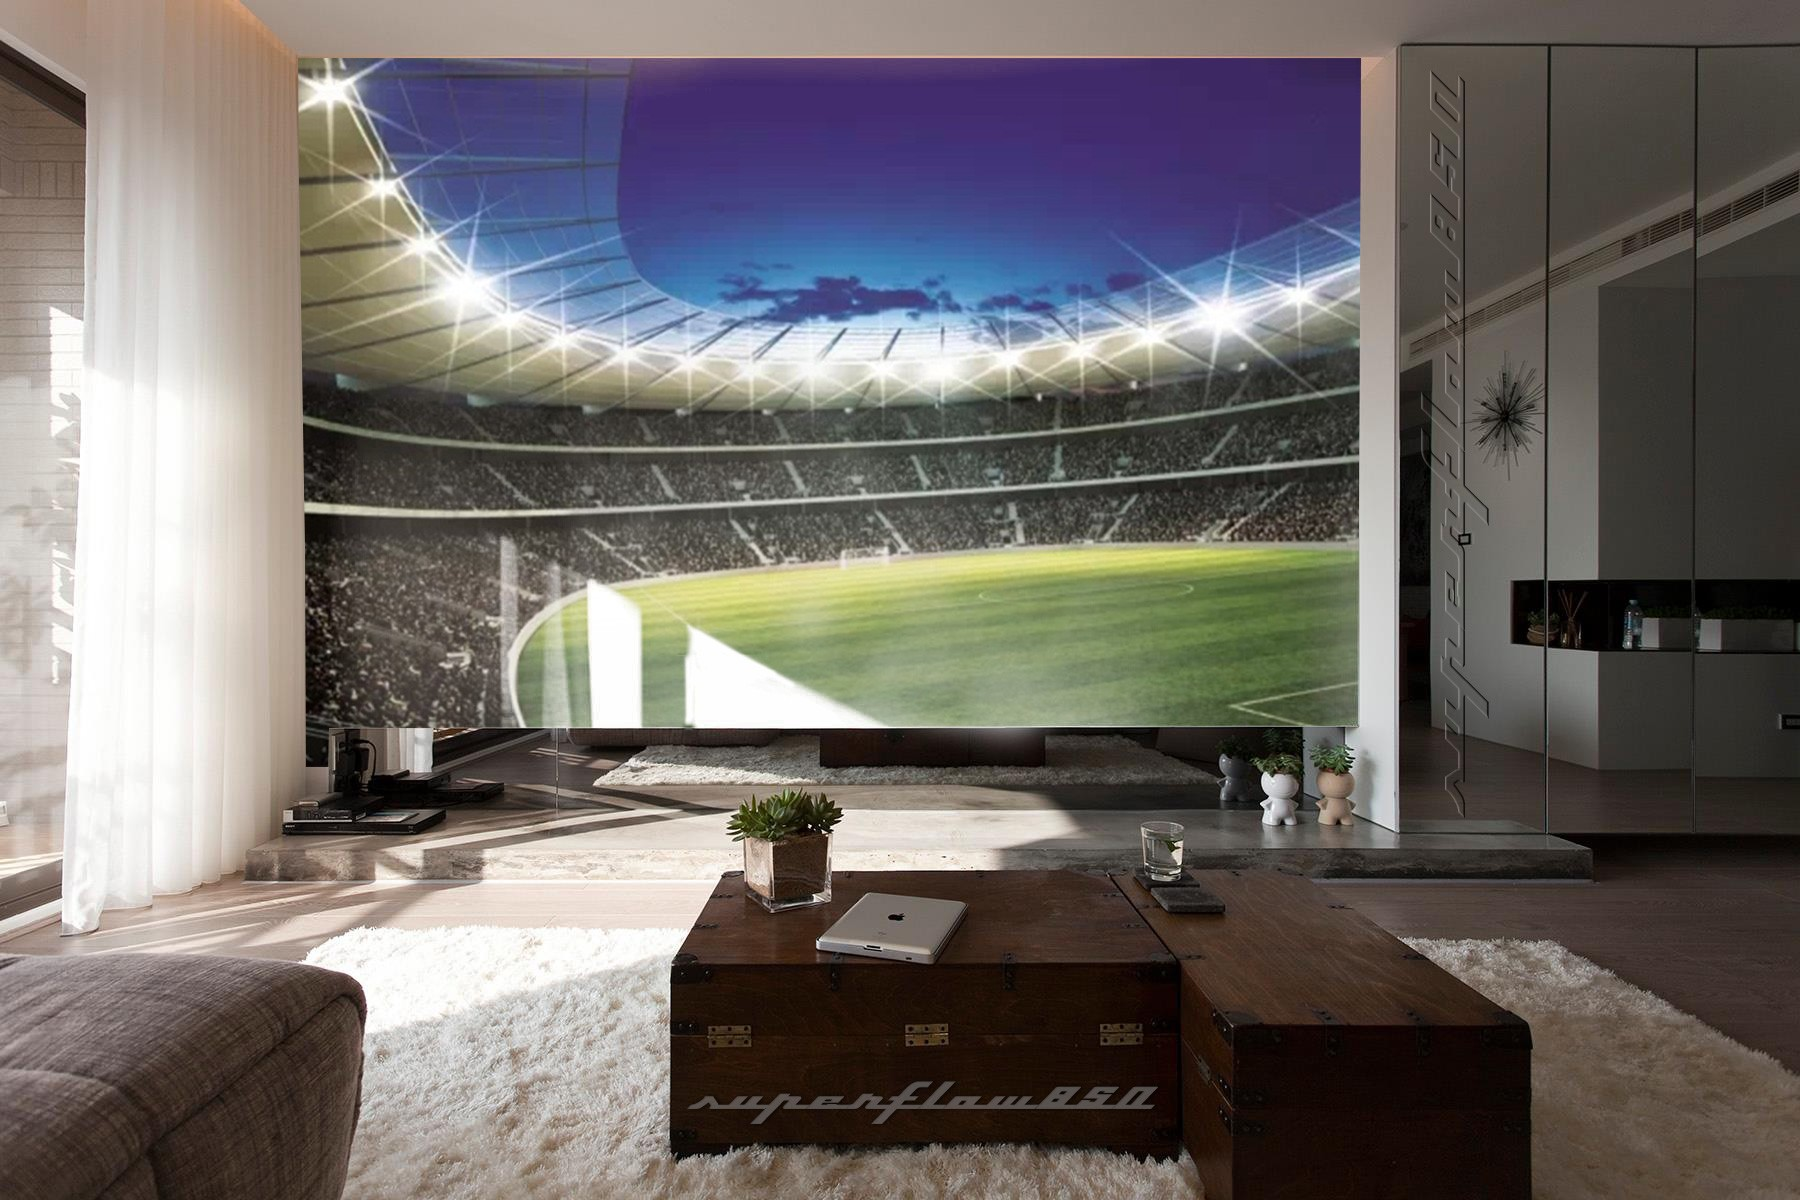 Football Stadium 2 Wallpaper Mural: Football Stadium Photo Wallpaper Wall Mural 323 P4